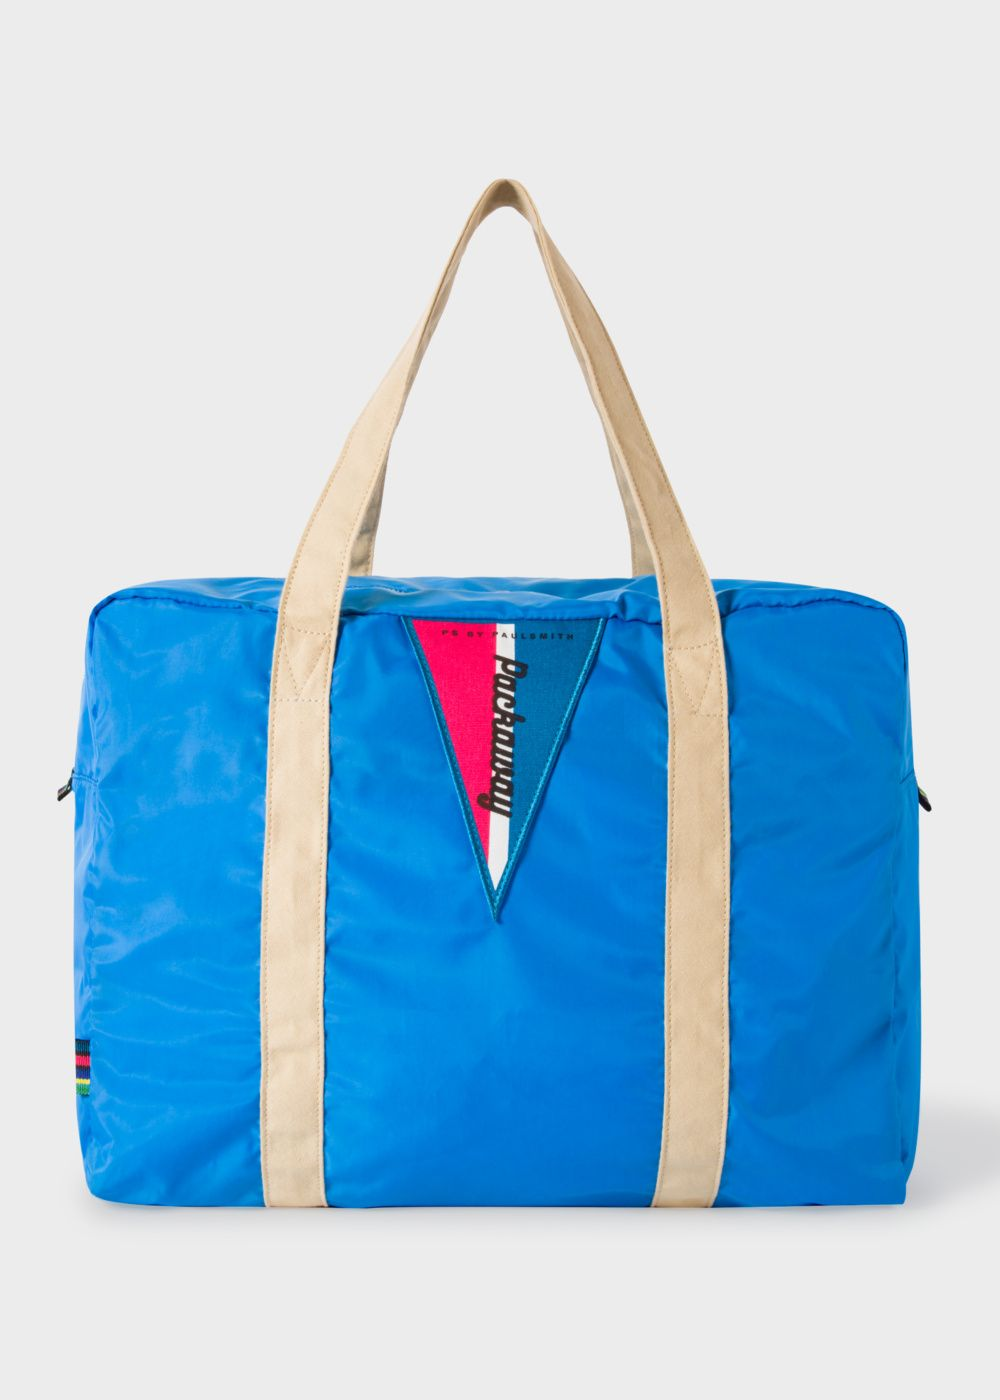 This Bright Blue Men S Gym Bag Has Two Stone Coloured Carry Handles And Features Vibrant Orange Contrasting Internal Binding